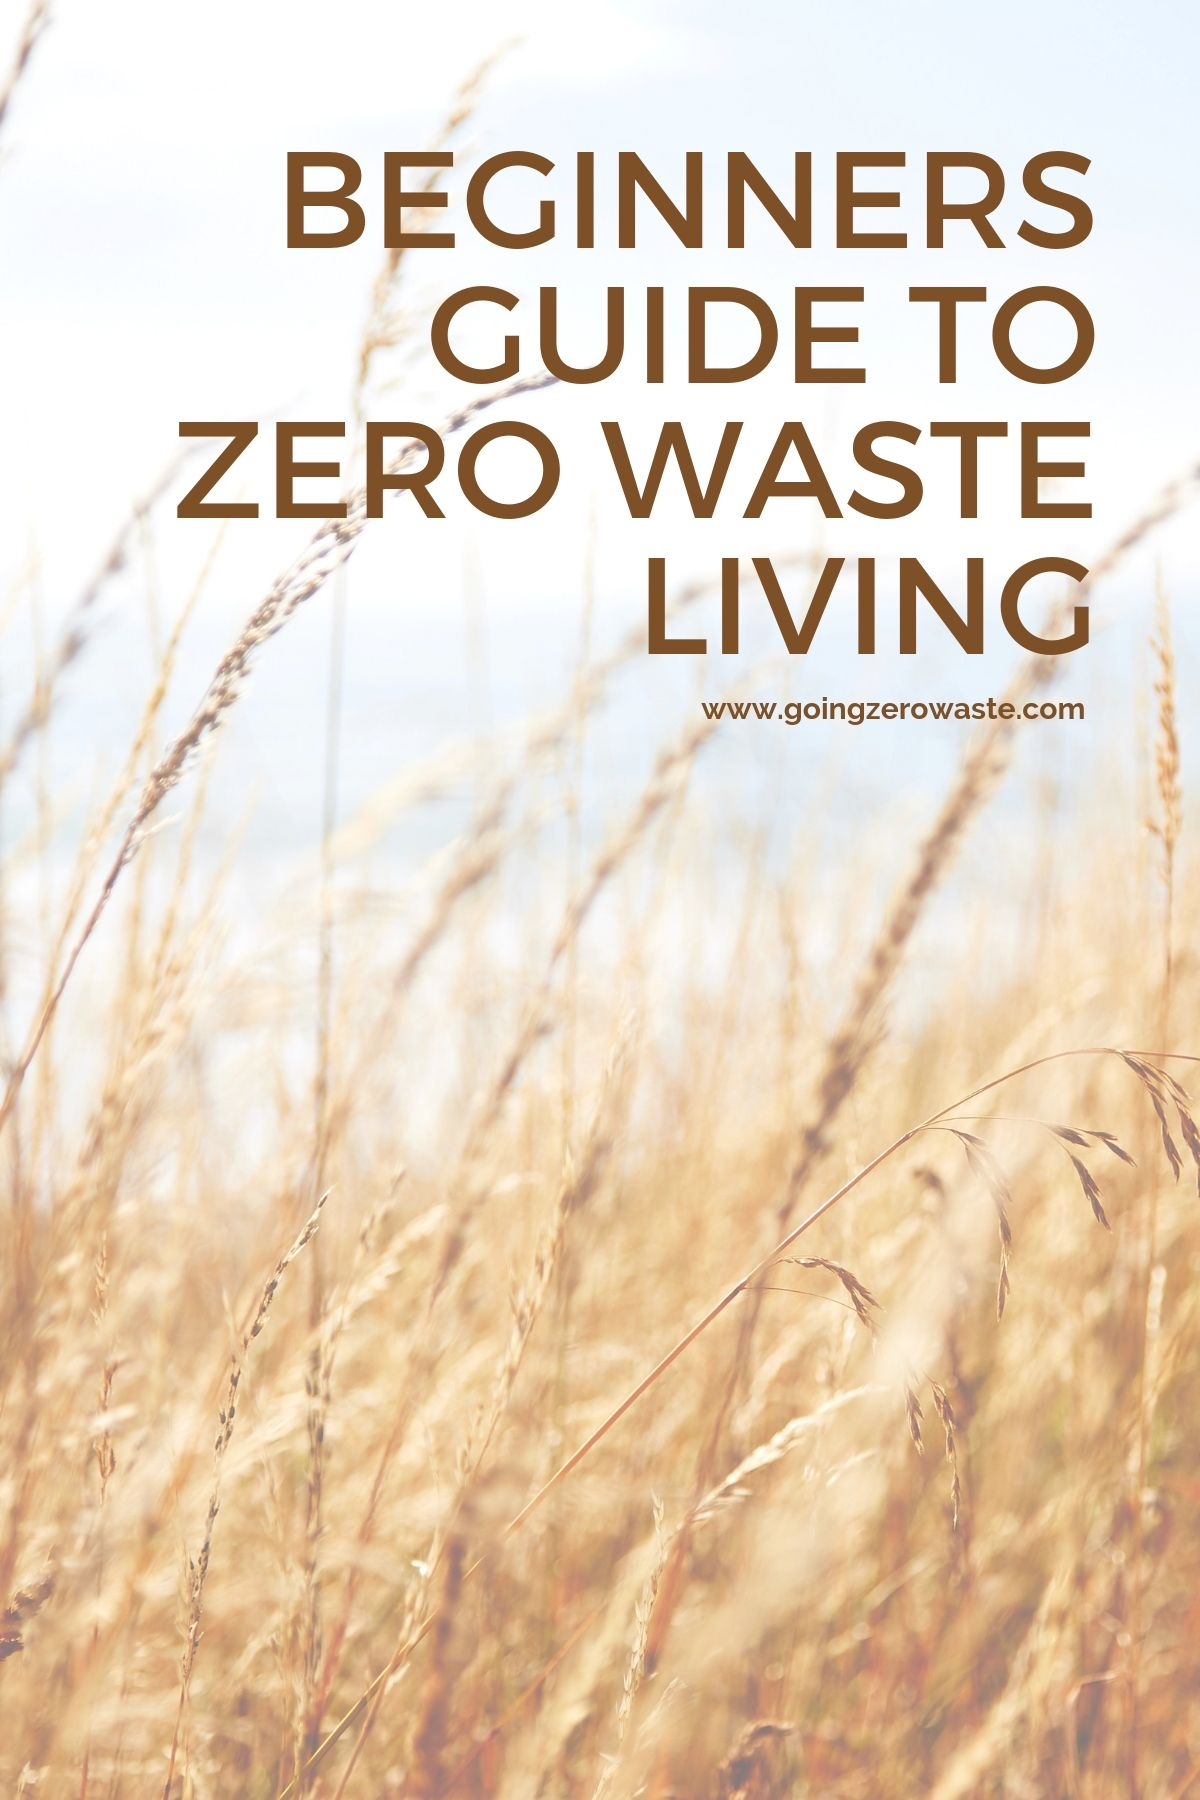 4 tips for starting a zero waste lifestyle and become a conscious consumer from wwww.goingzerowaste.com #zerowaste #ecofriendly #beginnersguide